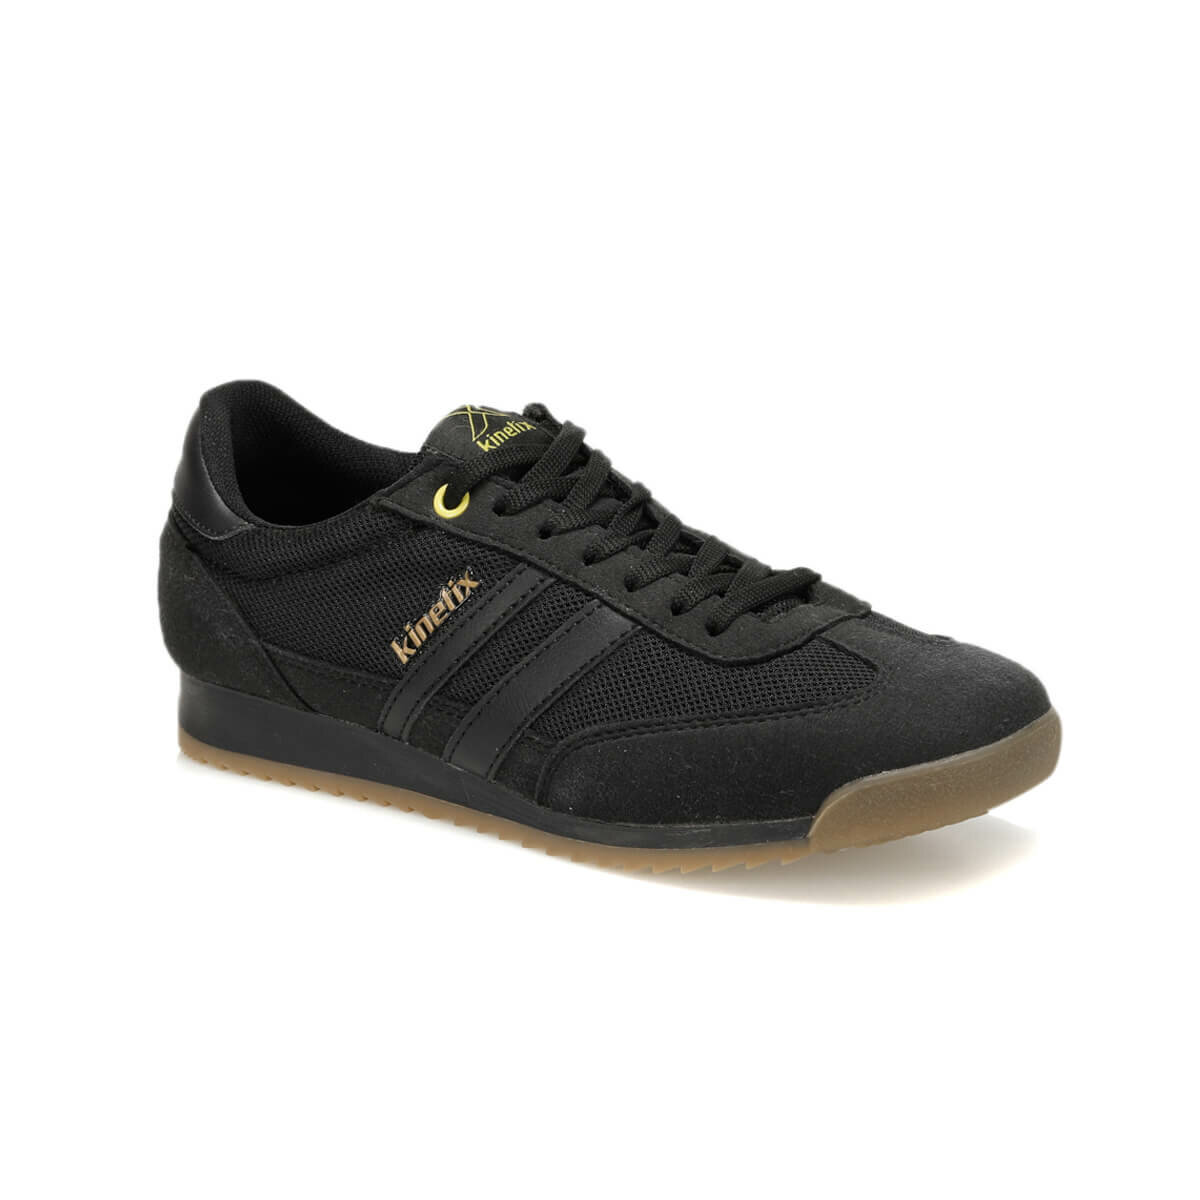 FLO HALLEY M Black Men 'S Sneaker Shoes KINETIX